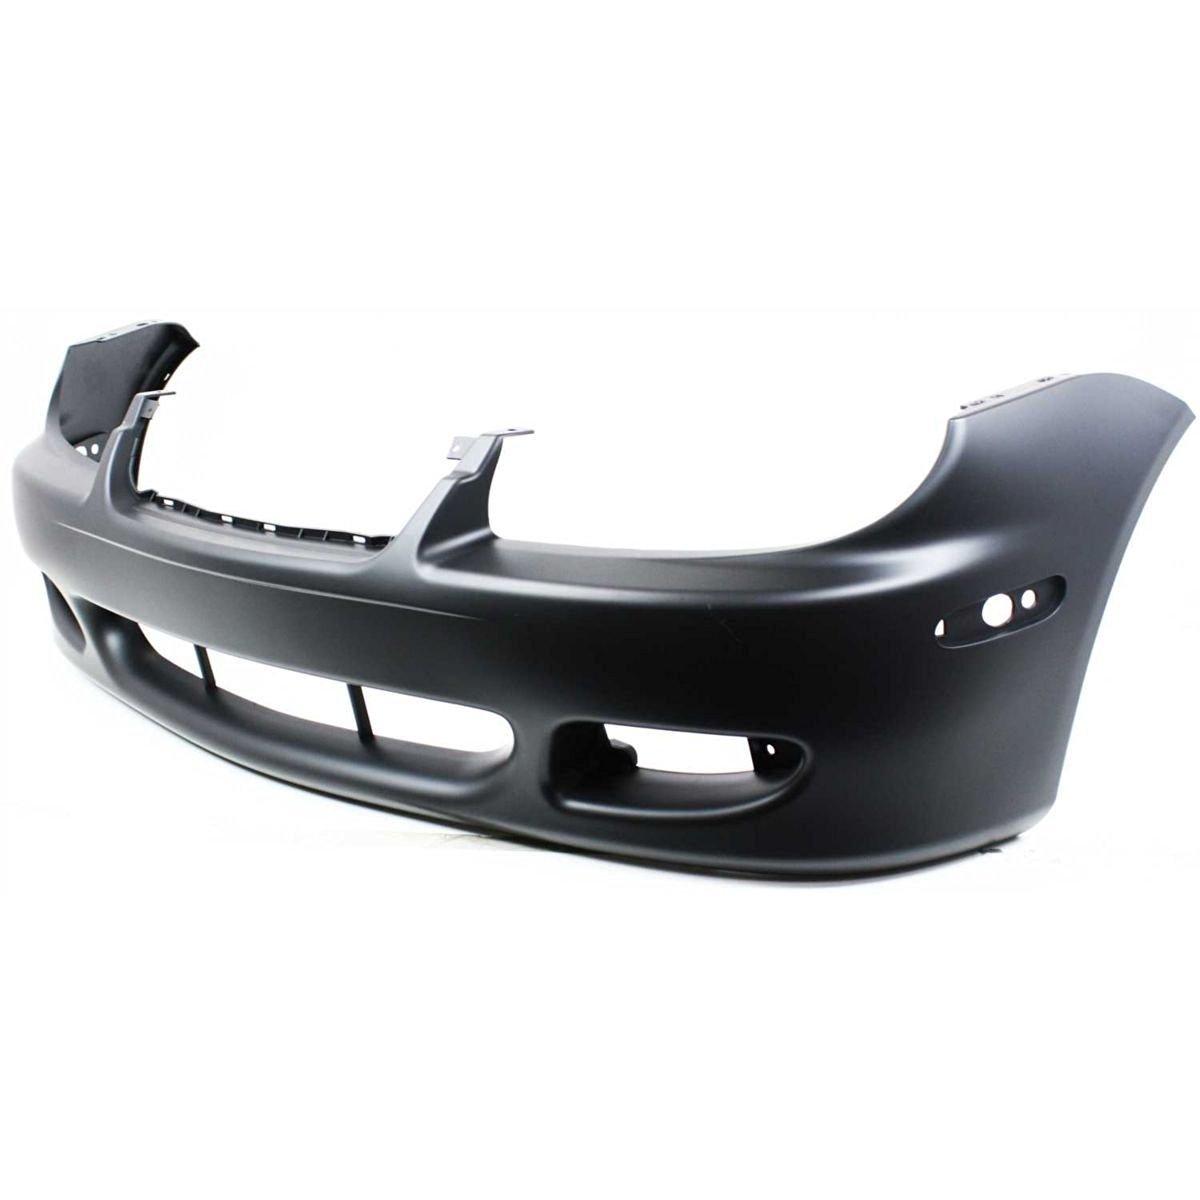 Diften 105-A5123-X01 - New Bumper Cover Facial Front Primered Dodge Neon 2002 CH1000337C 5080883AA